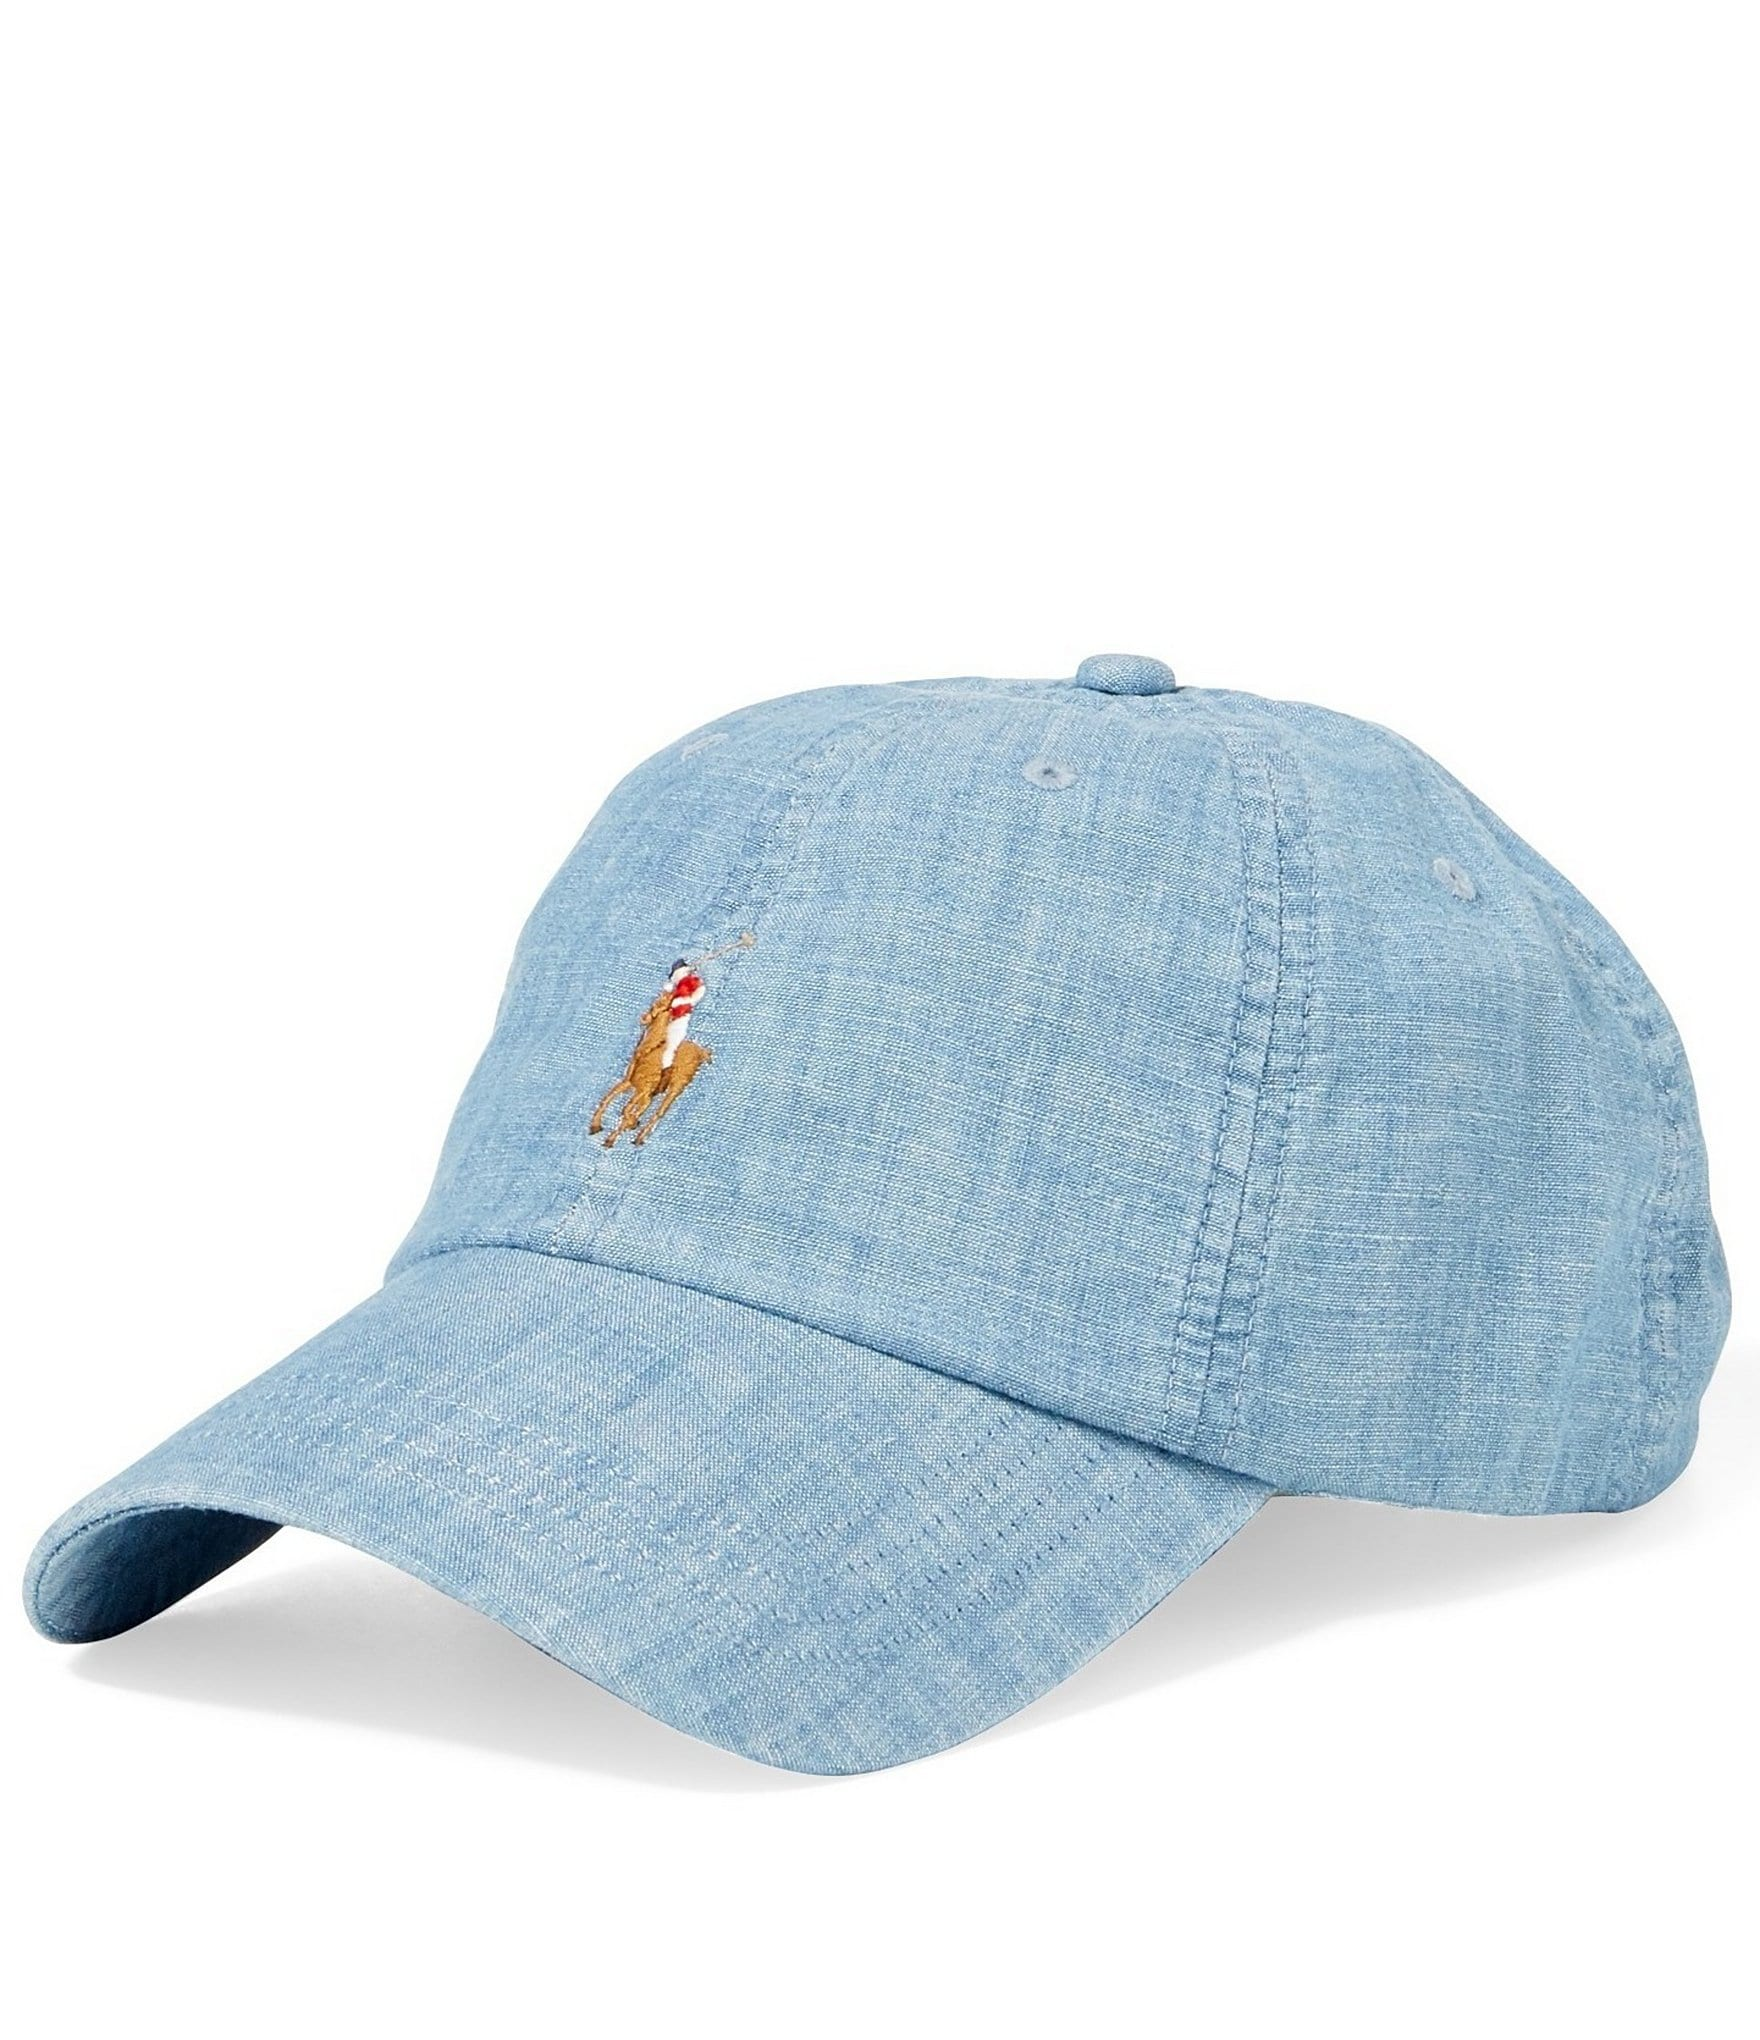 Player Logo Hawaiian Print Baseball Cap in Blue - Prepster hawaiian Polo Ralph Lauren SD595FzgD